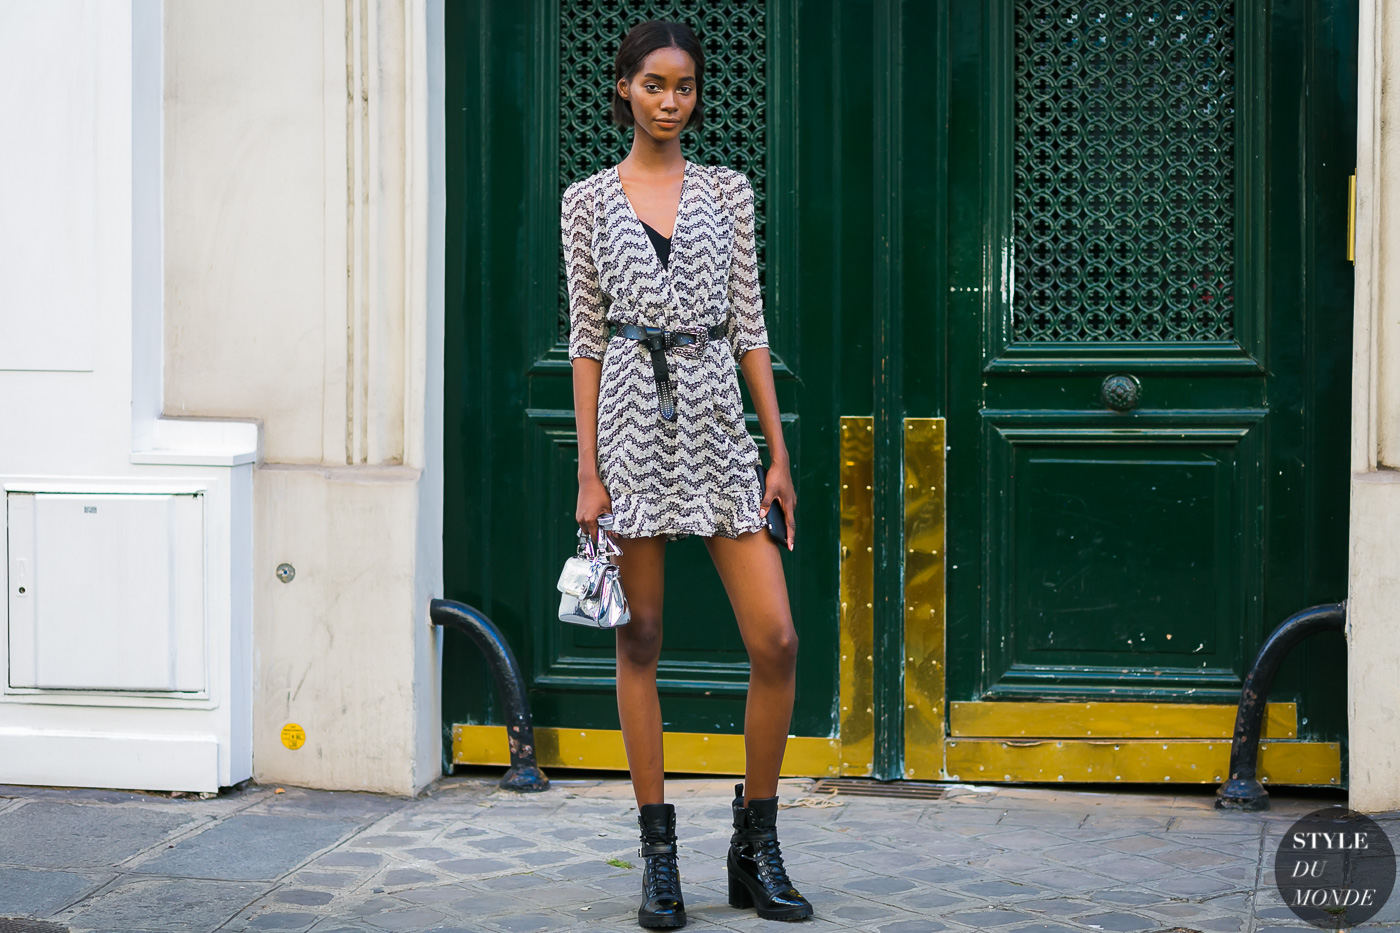 Tami Williams by STYLEDUMONDE Street Style Fashion Photography0E2A1128